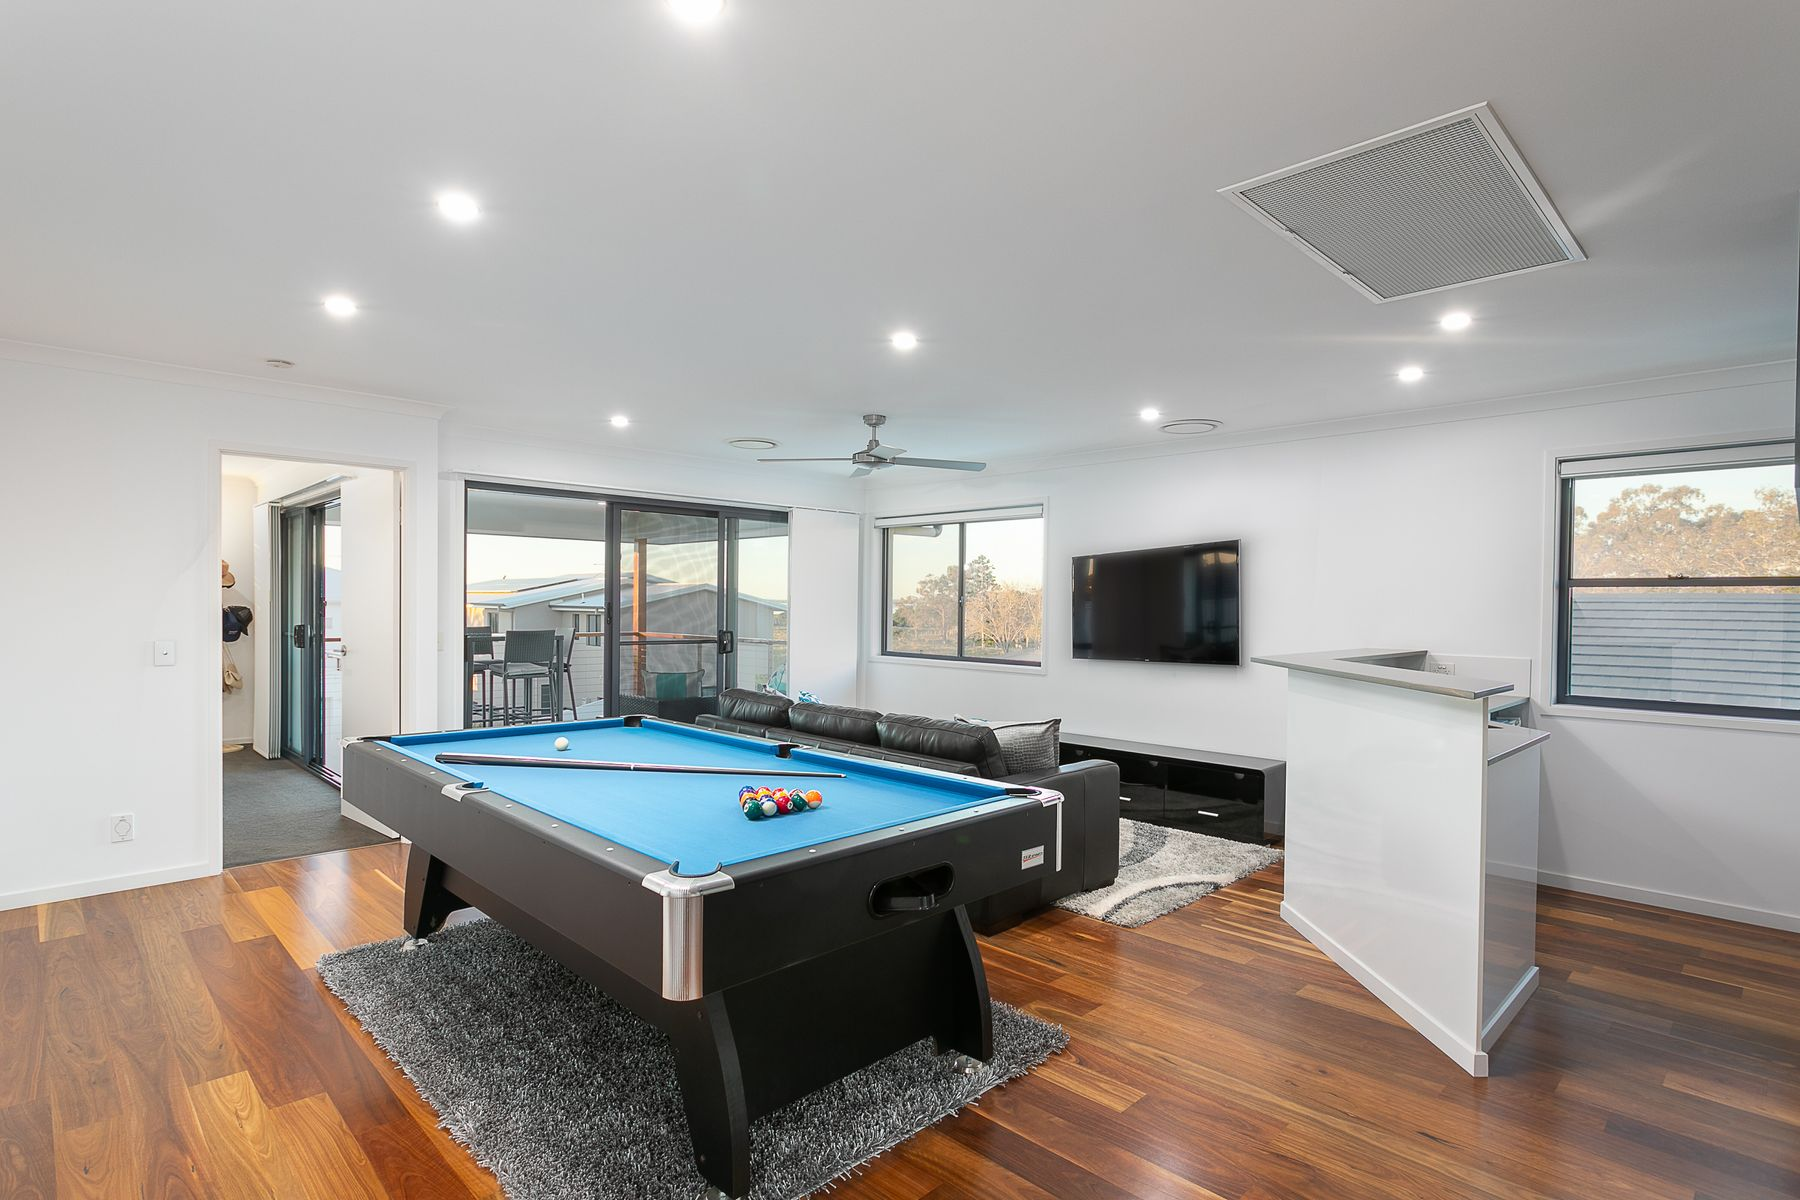 120 Thornlands Road, Thornlands, QLD 4164